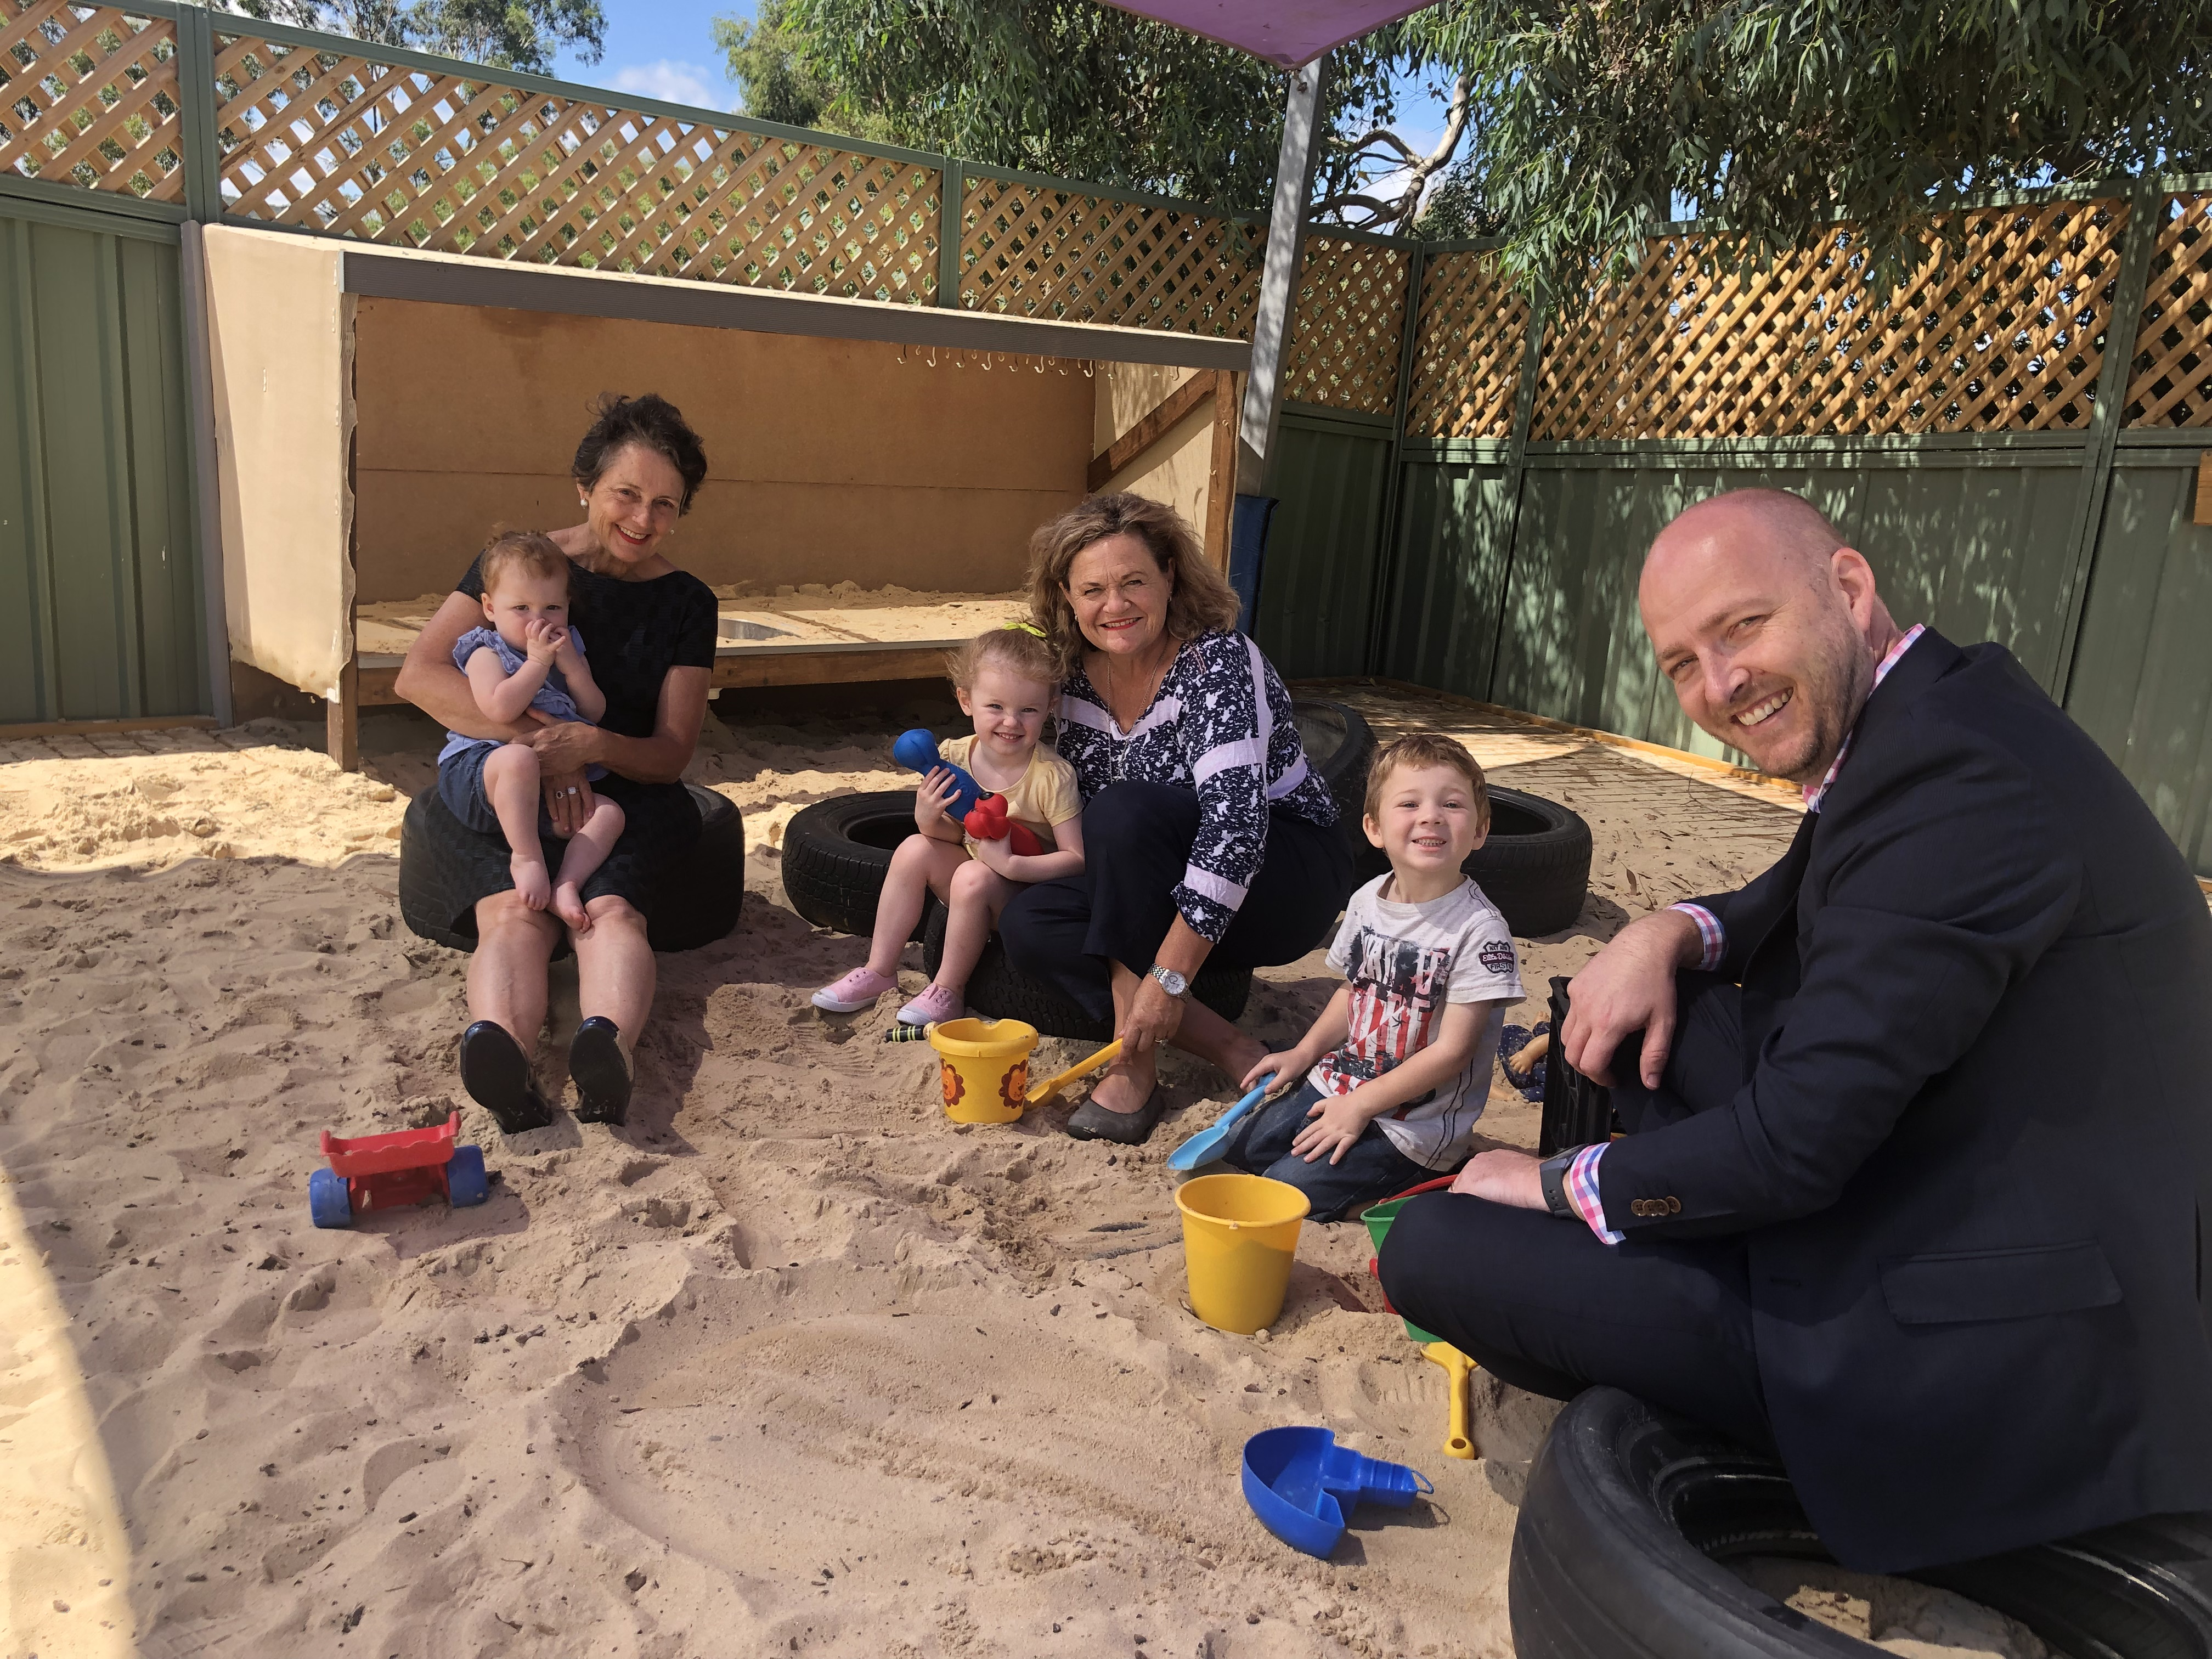 REYNOLDS STREET PLAY UPGRADE MEANS BIG FAT SMILES